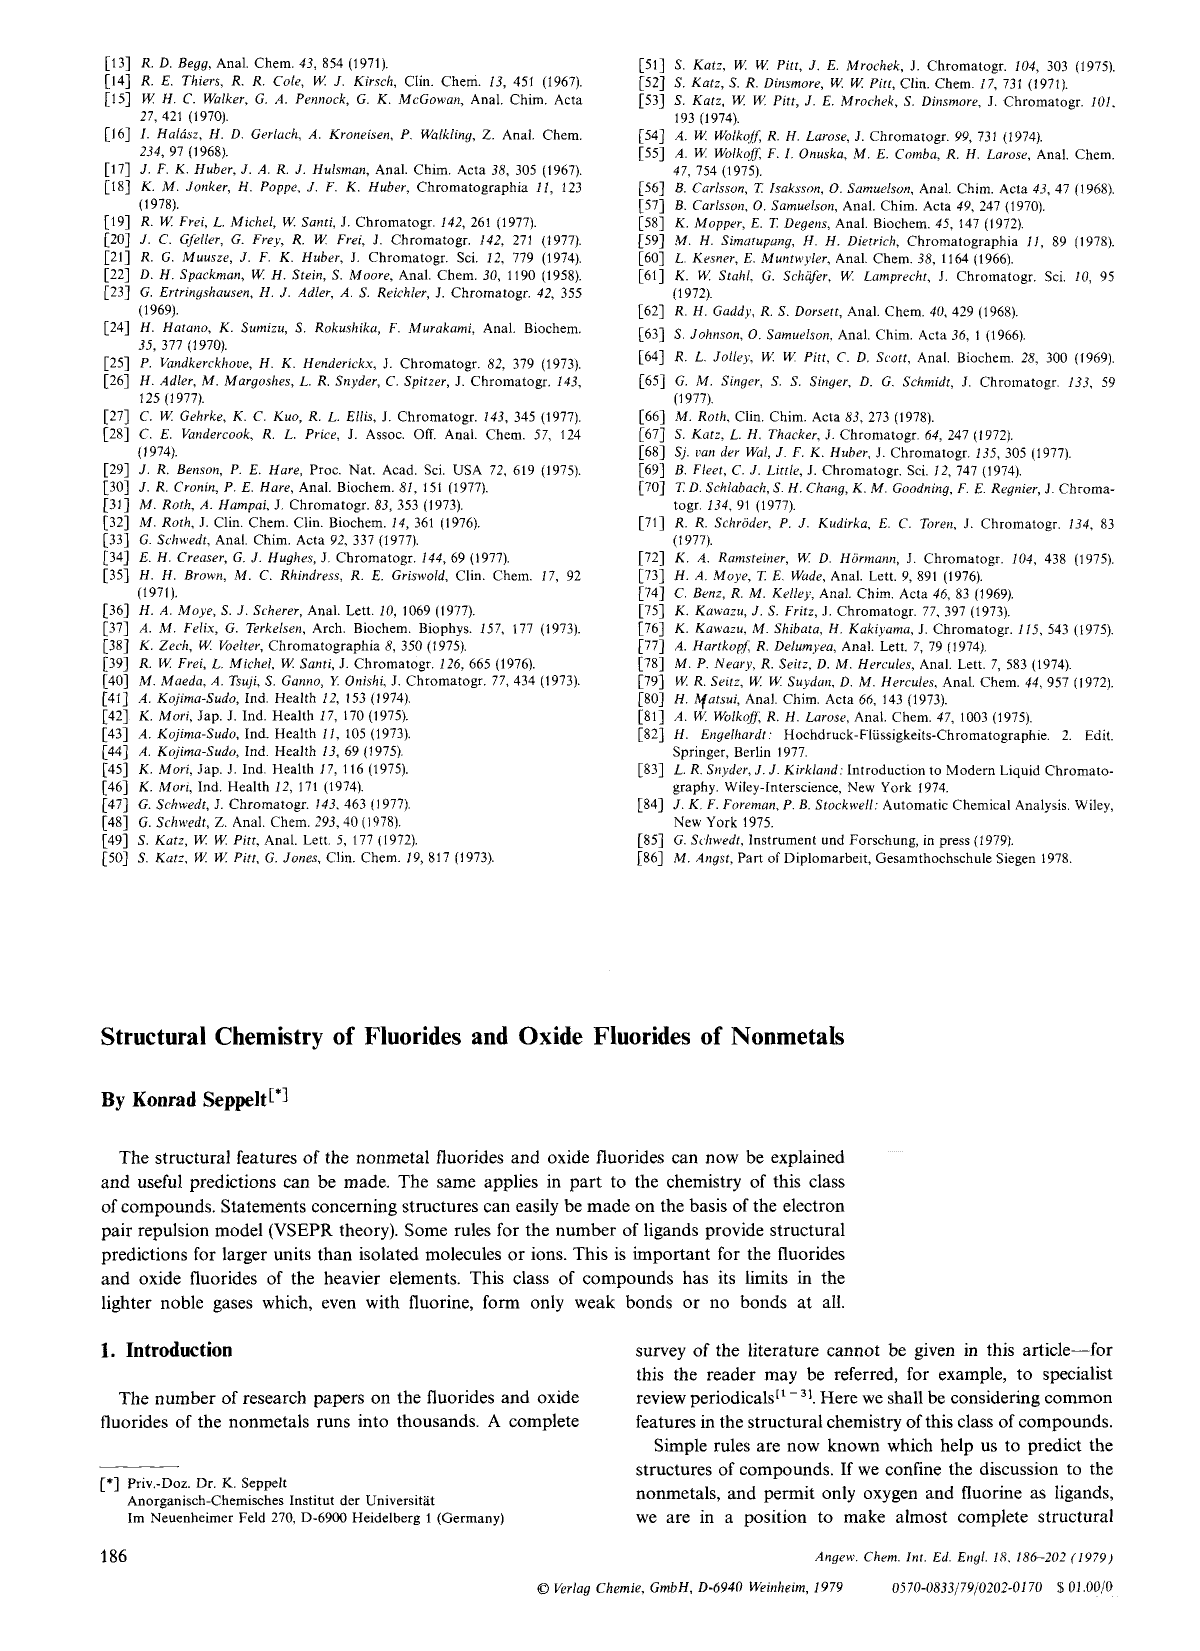 Structural Chemistry Of Fluorides And Oxide Fluorides Of Nonmetals